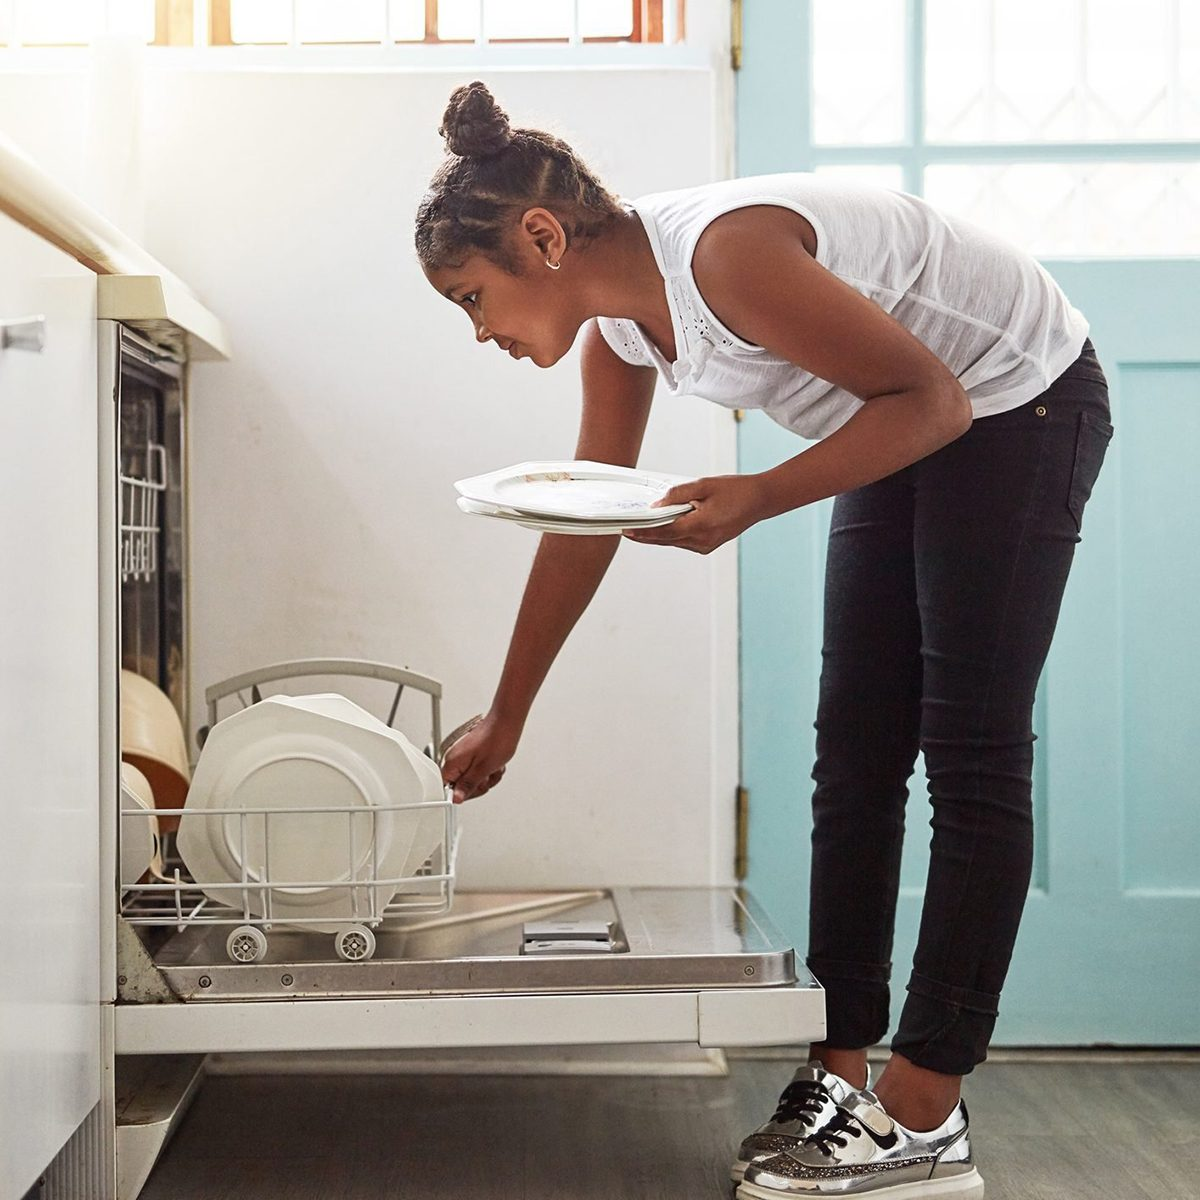 Shot of a young girl packing dishes in the dishwasher